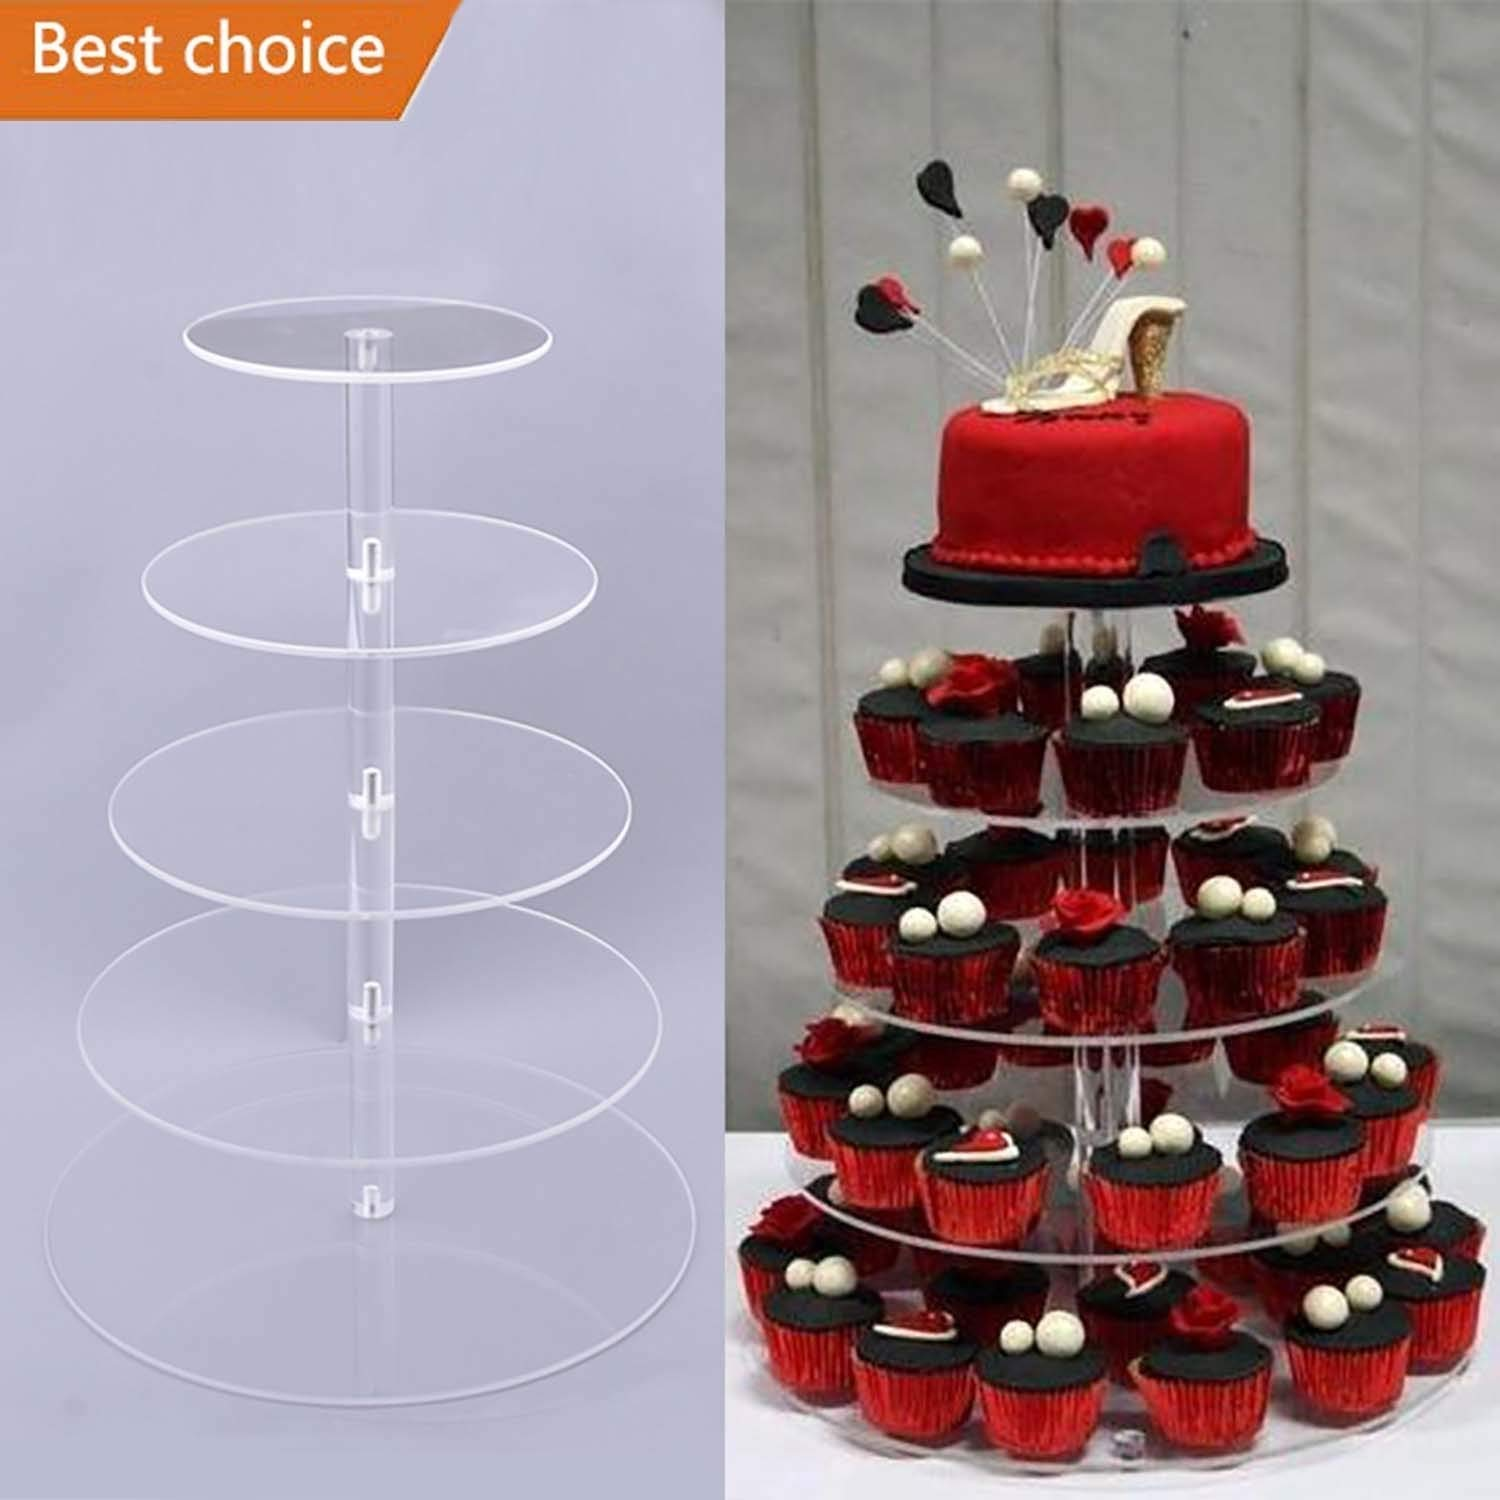 Acazon 5 Tier Round Clear Acrylic Cupcake Stand Wedding Display Cake Dessert Tower for Birthday Wedding Party [US STOCK] (5 Tier)